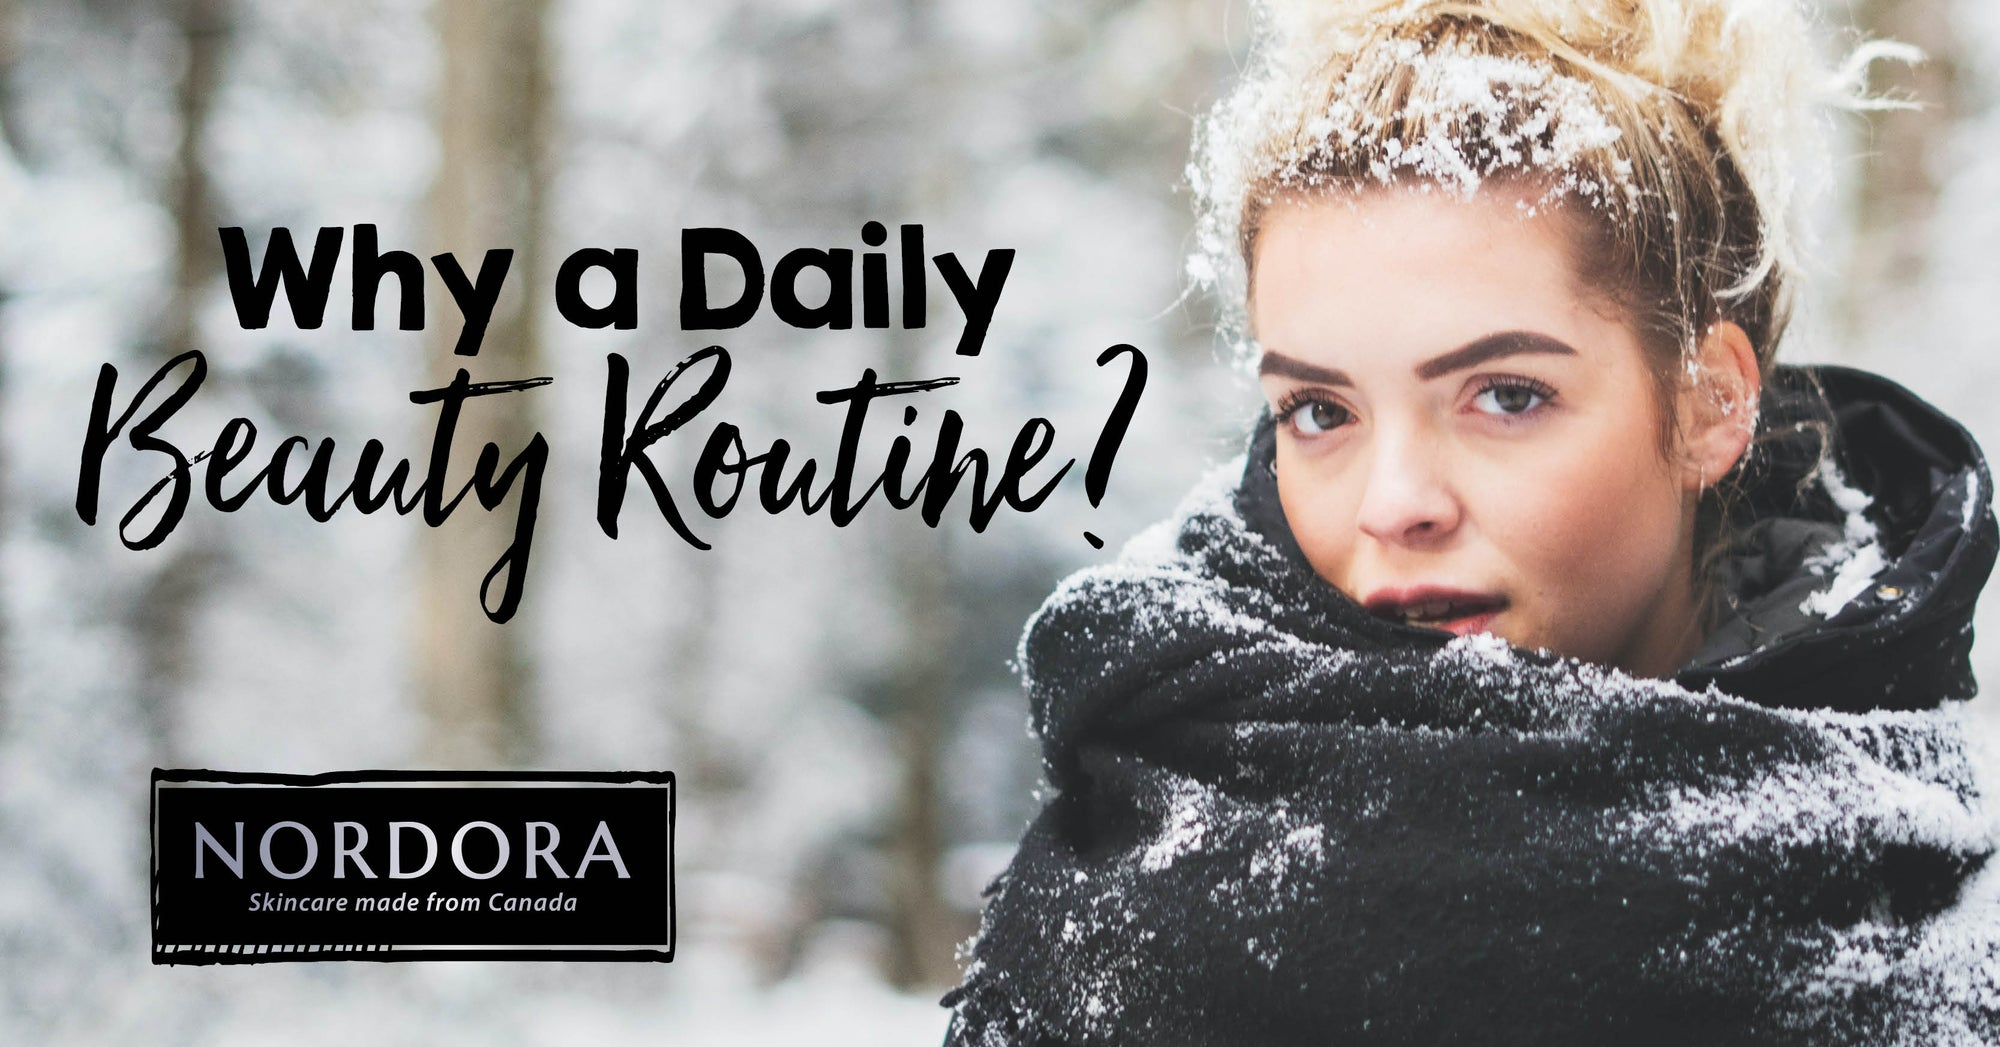 Why a Daily Beauty Routine?